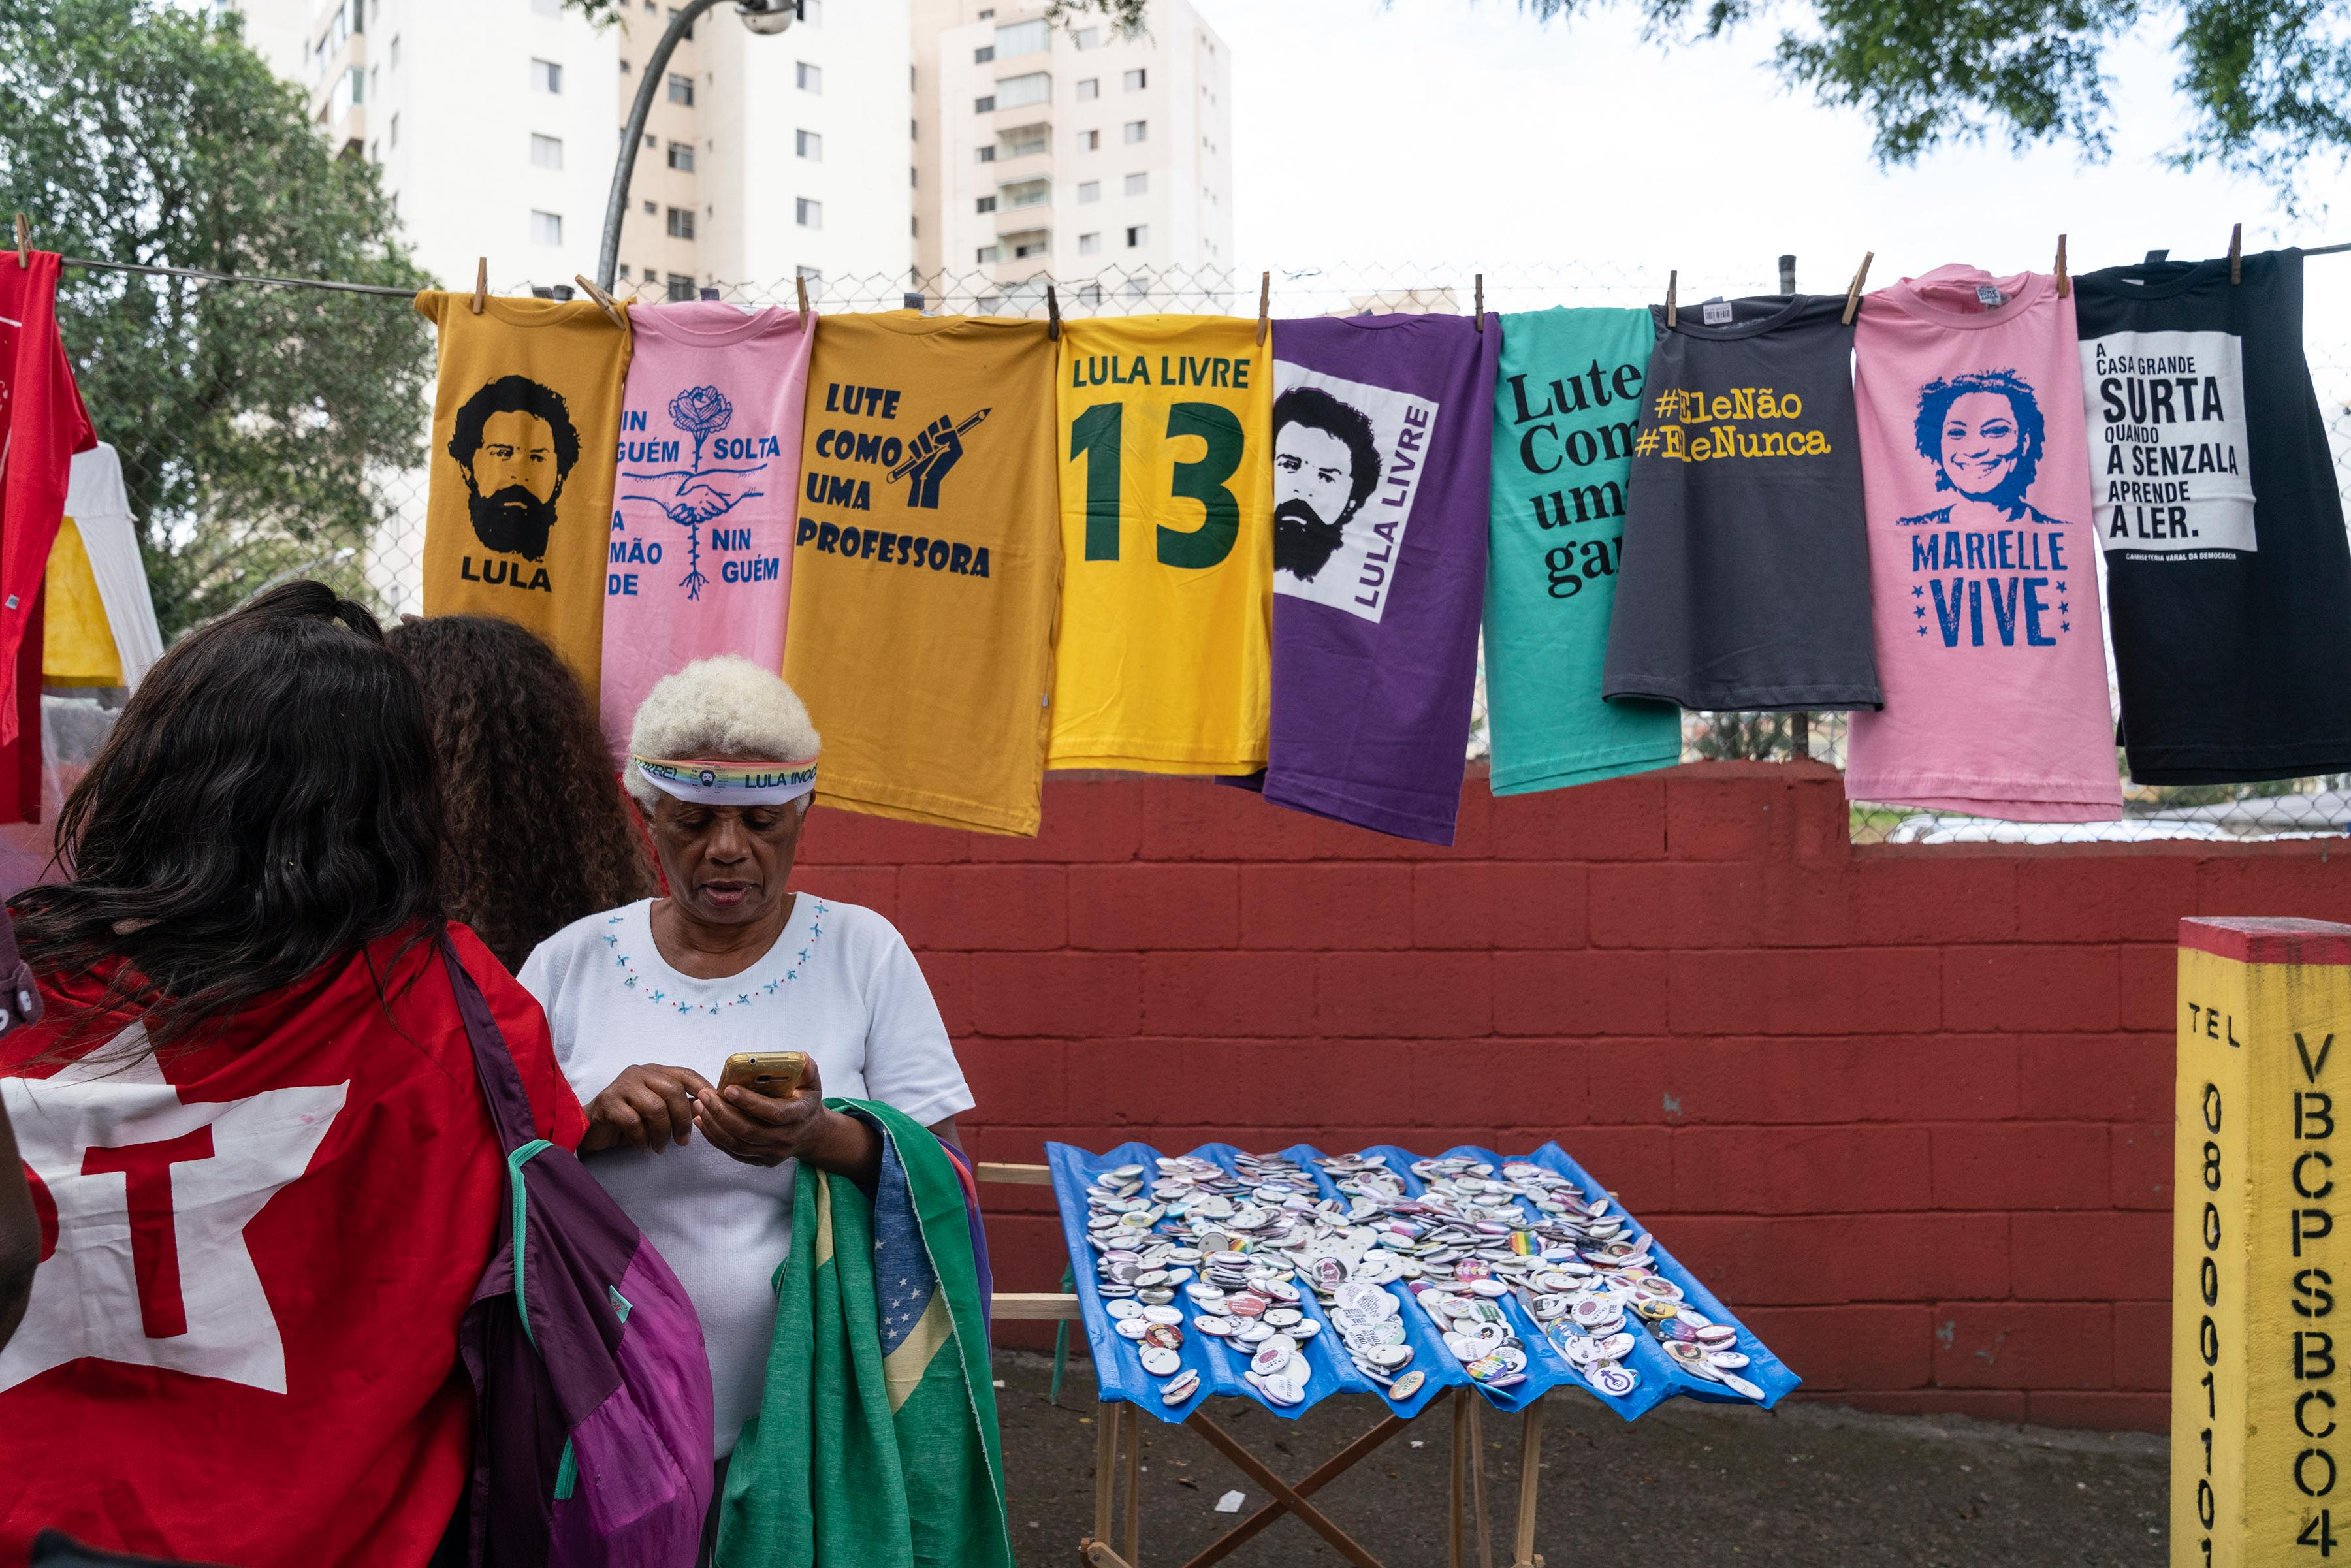 9 November 2019: T-shirts for sale bear the face of former Brazilian president Luiz Inácio Lula da Silva, who was released from prison after a ruling by the Supreme Court.